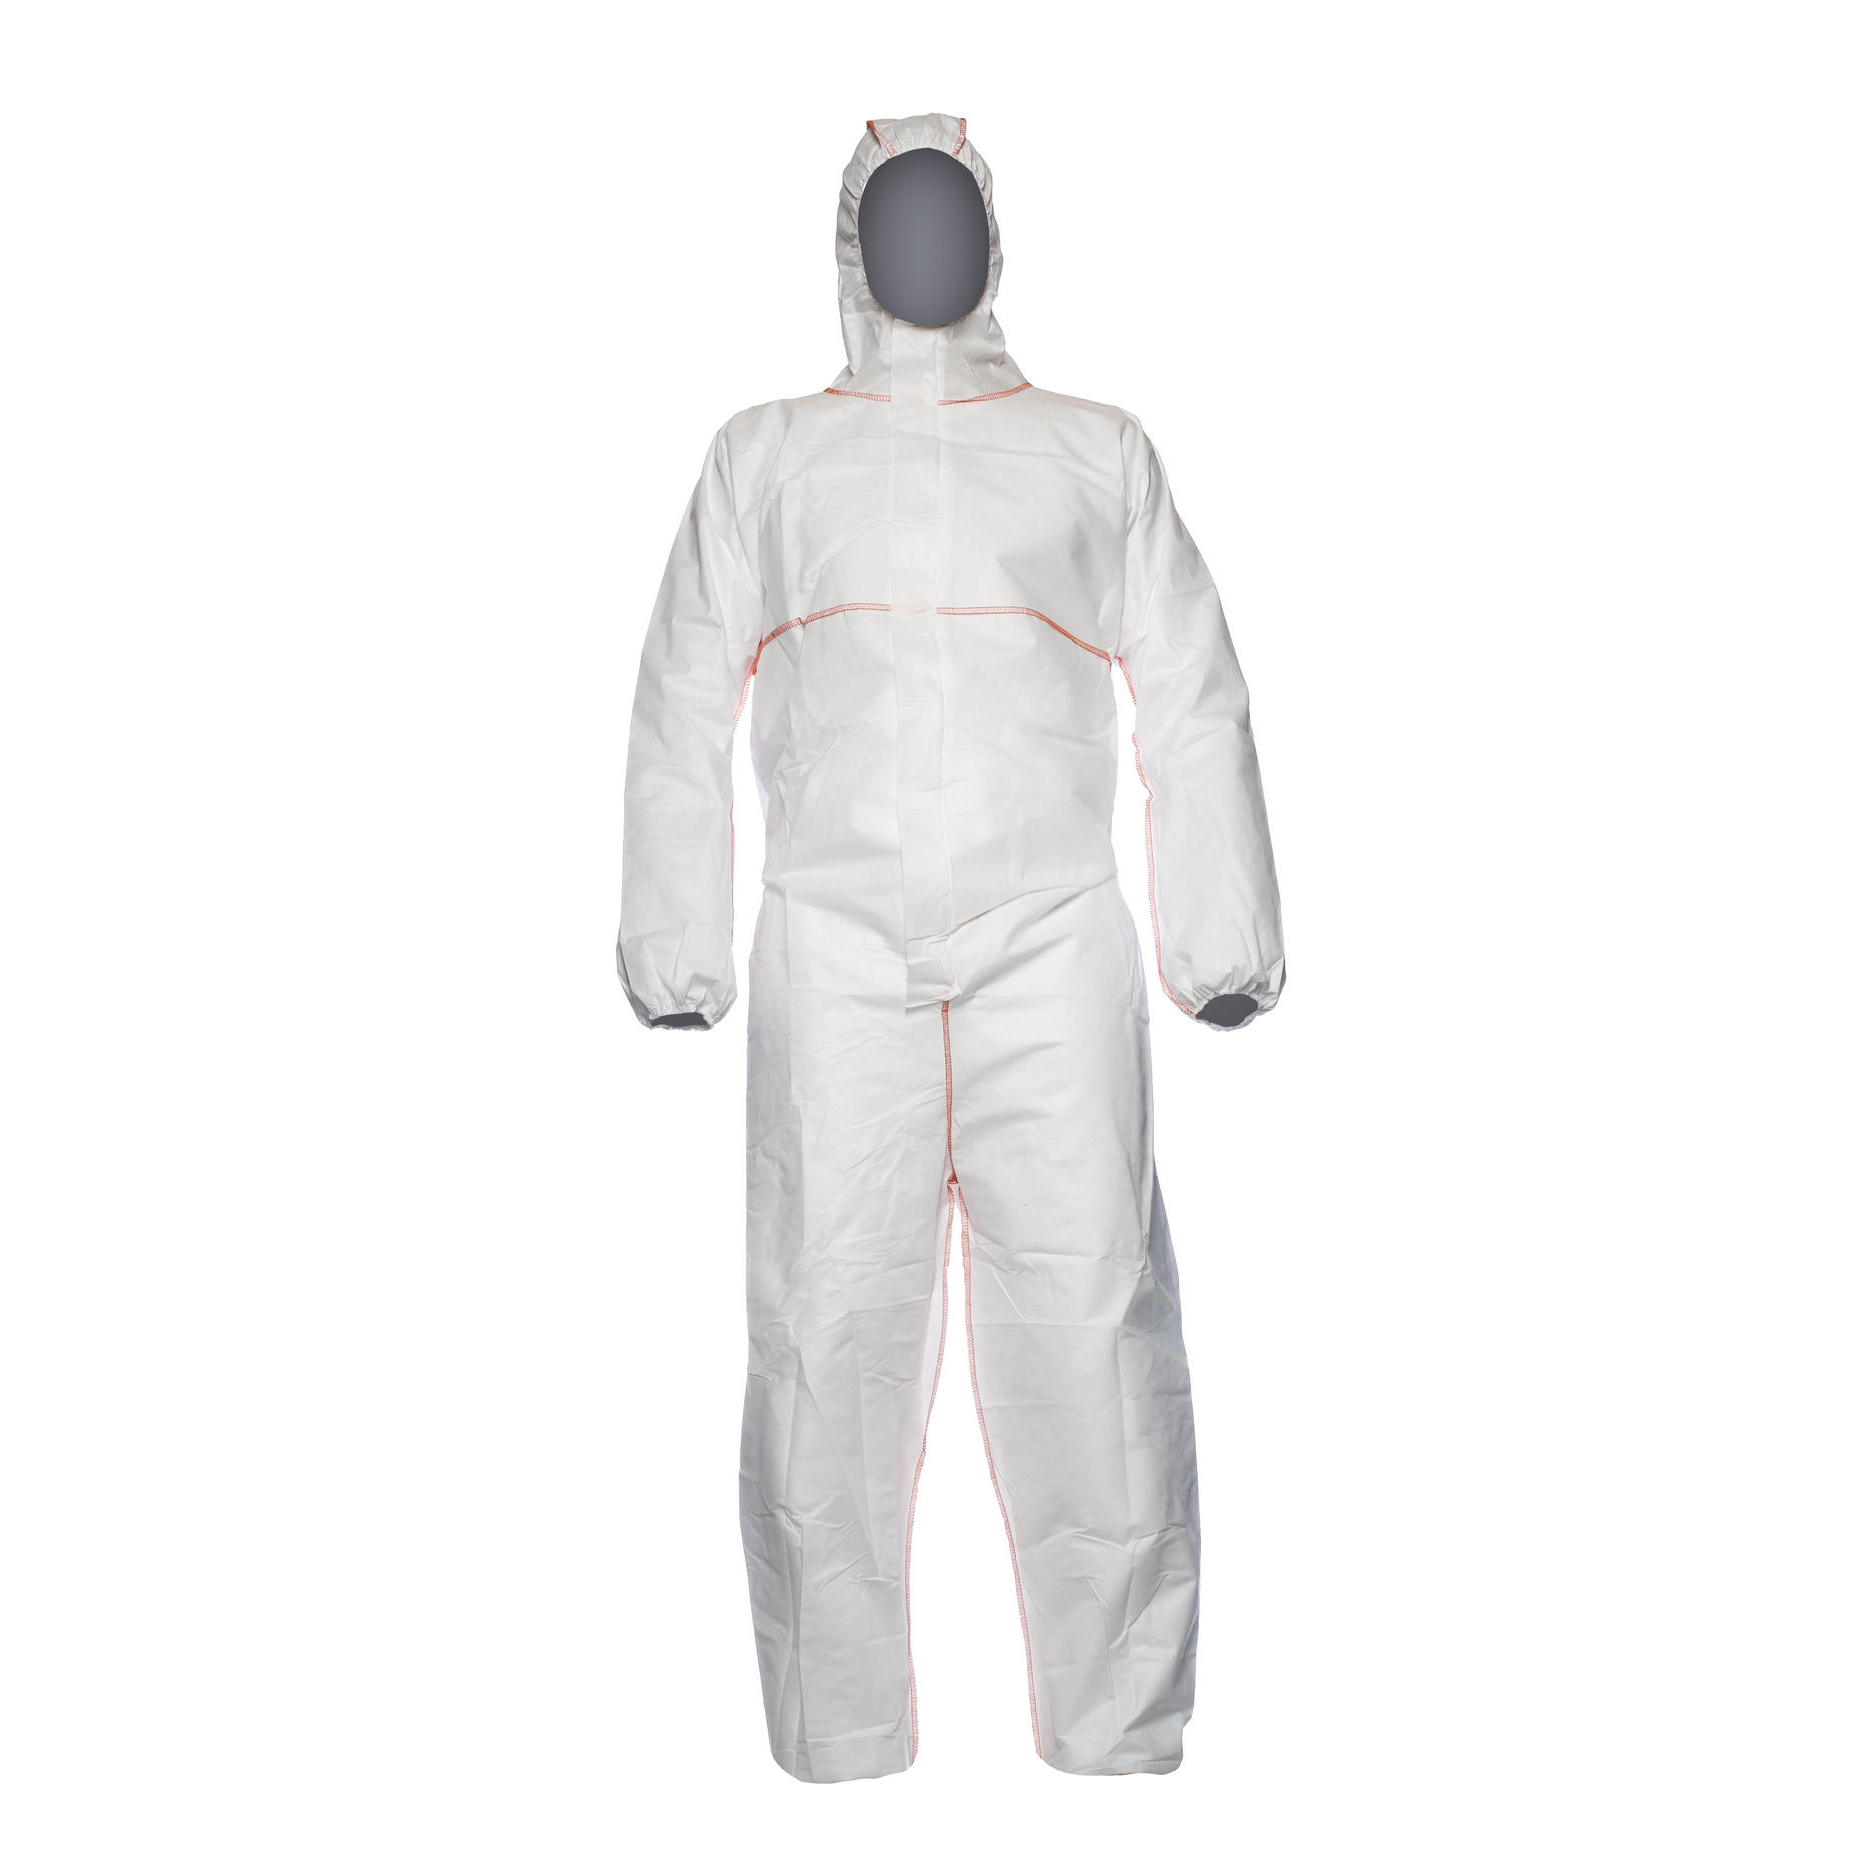 Protective coveralls Proshield Fire Resistant Coveralls White 3XL Ref PROFRXXXL *Up to 3 Day Leadtime*